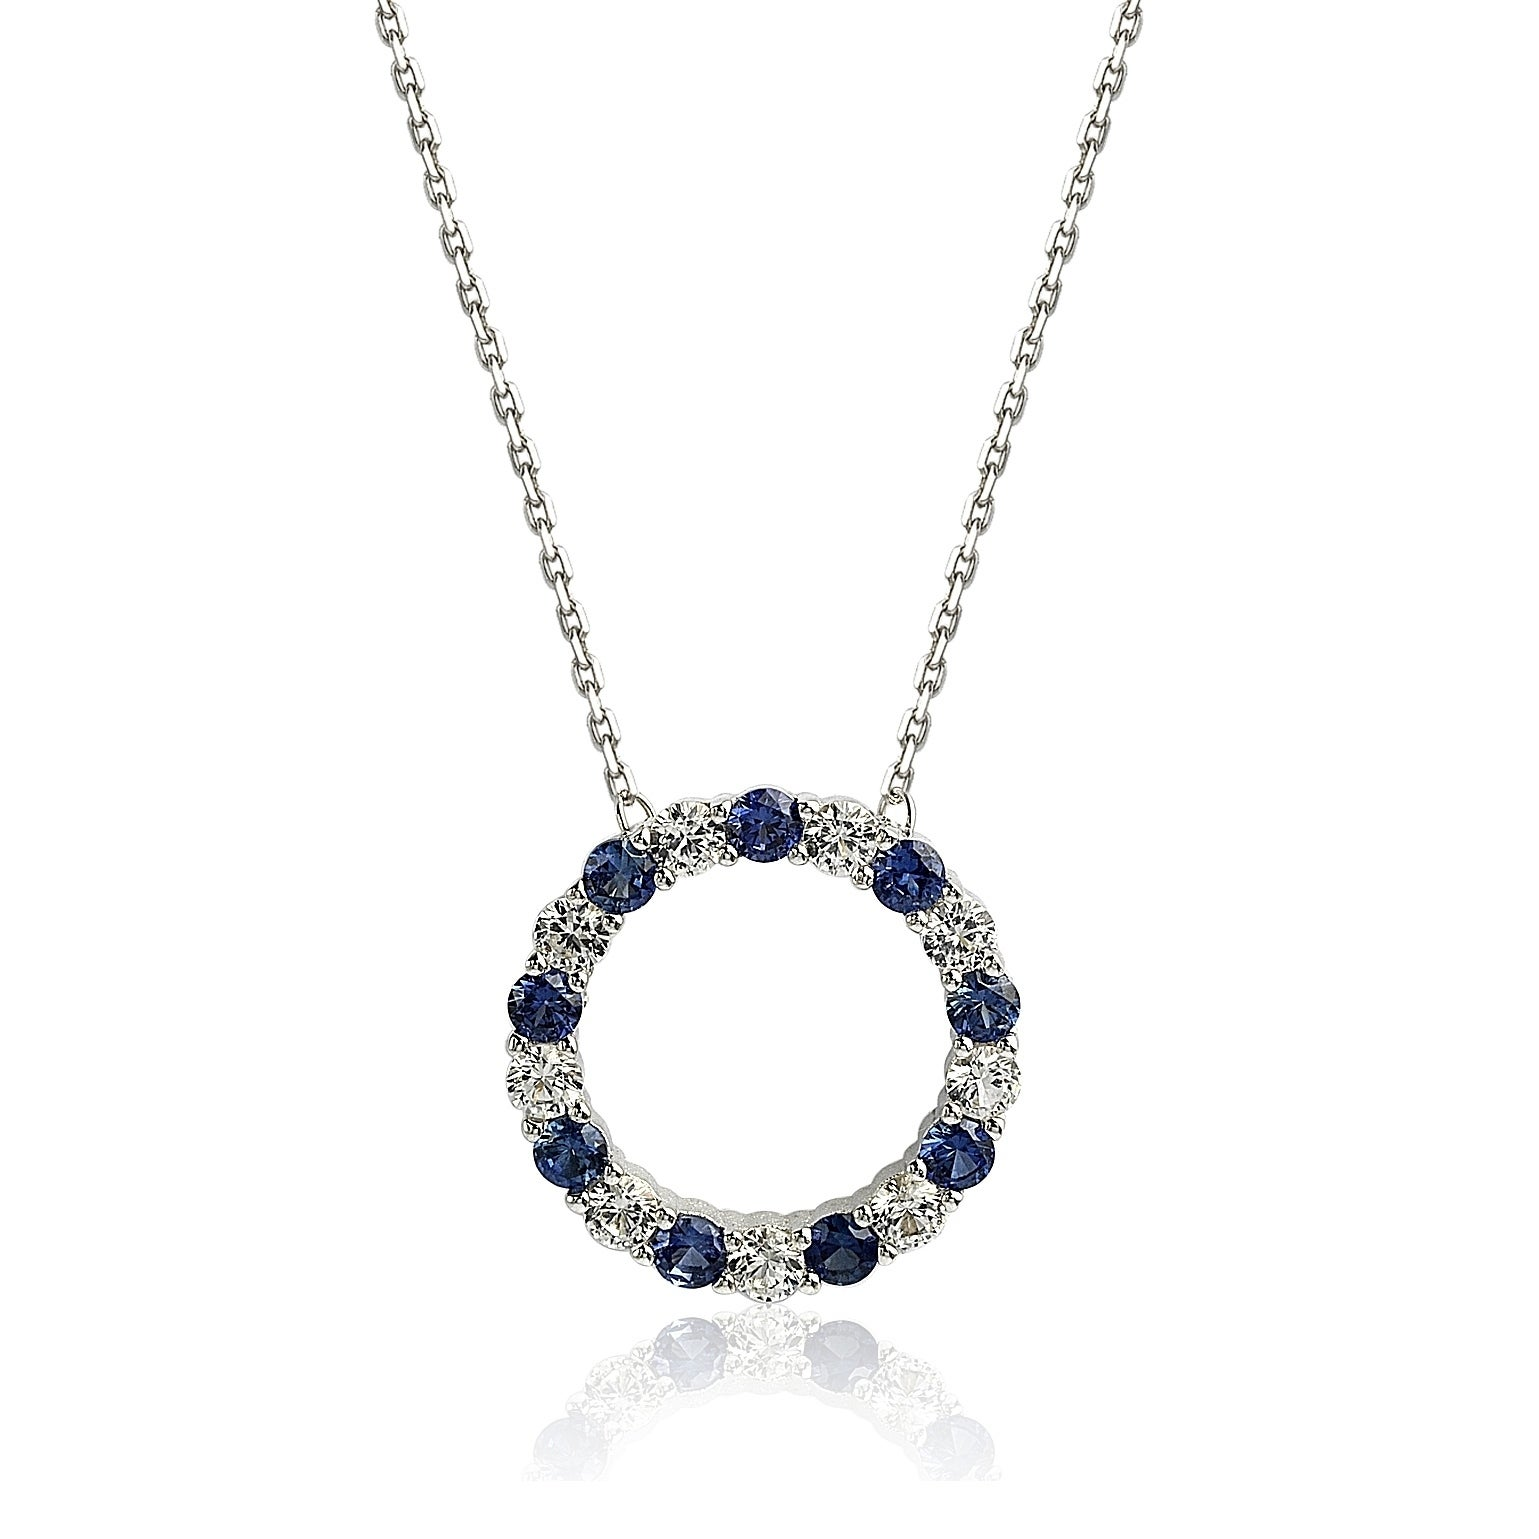 56c036d498b09 Suzy Levian Sterling Silver Sapphire & Diamond Accent Alternating Circle  Eternity Necklace